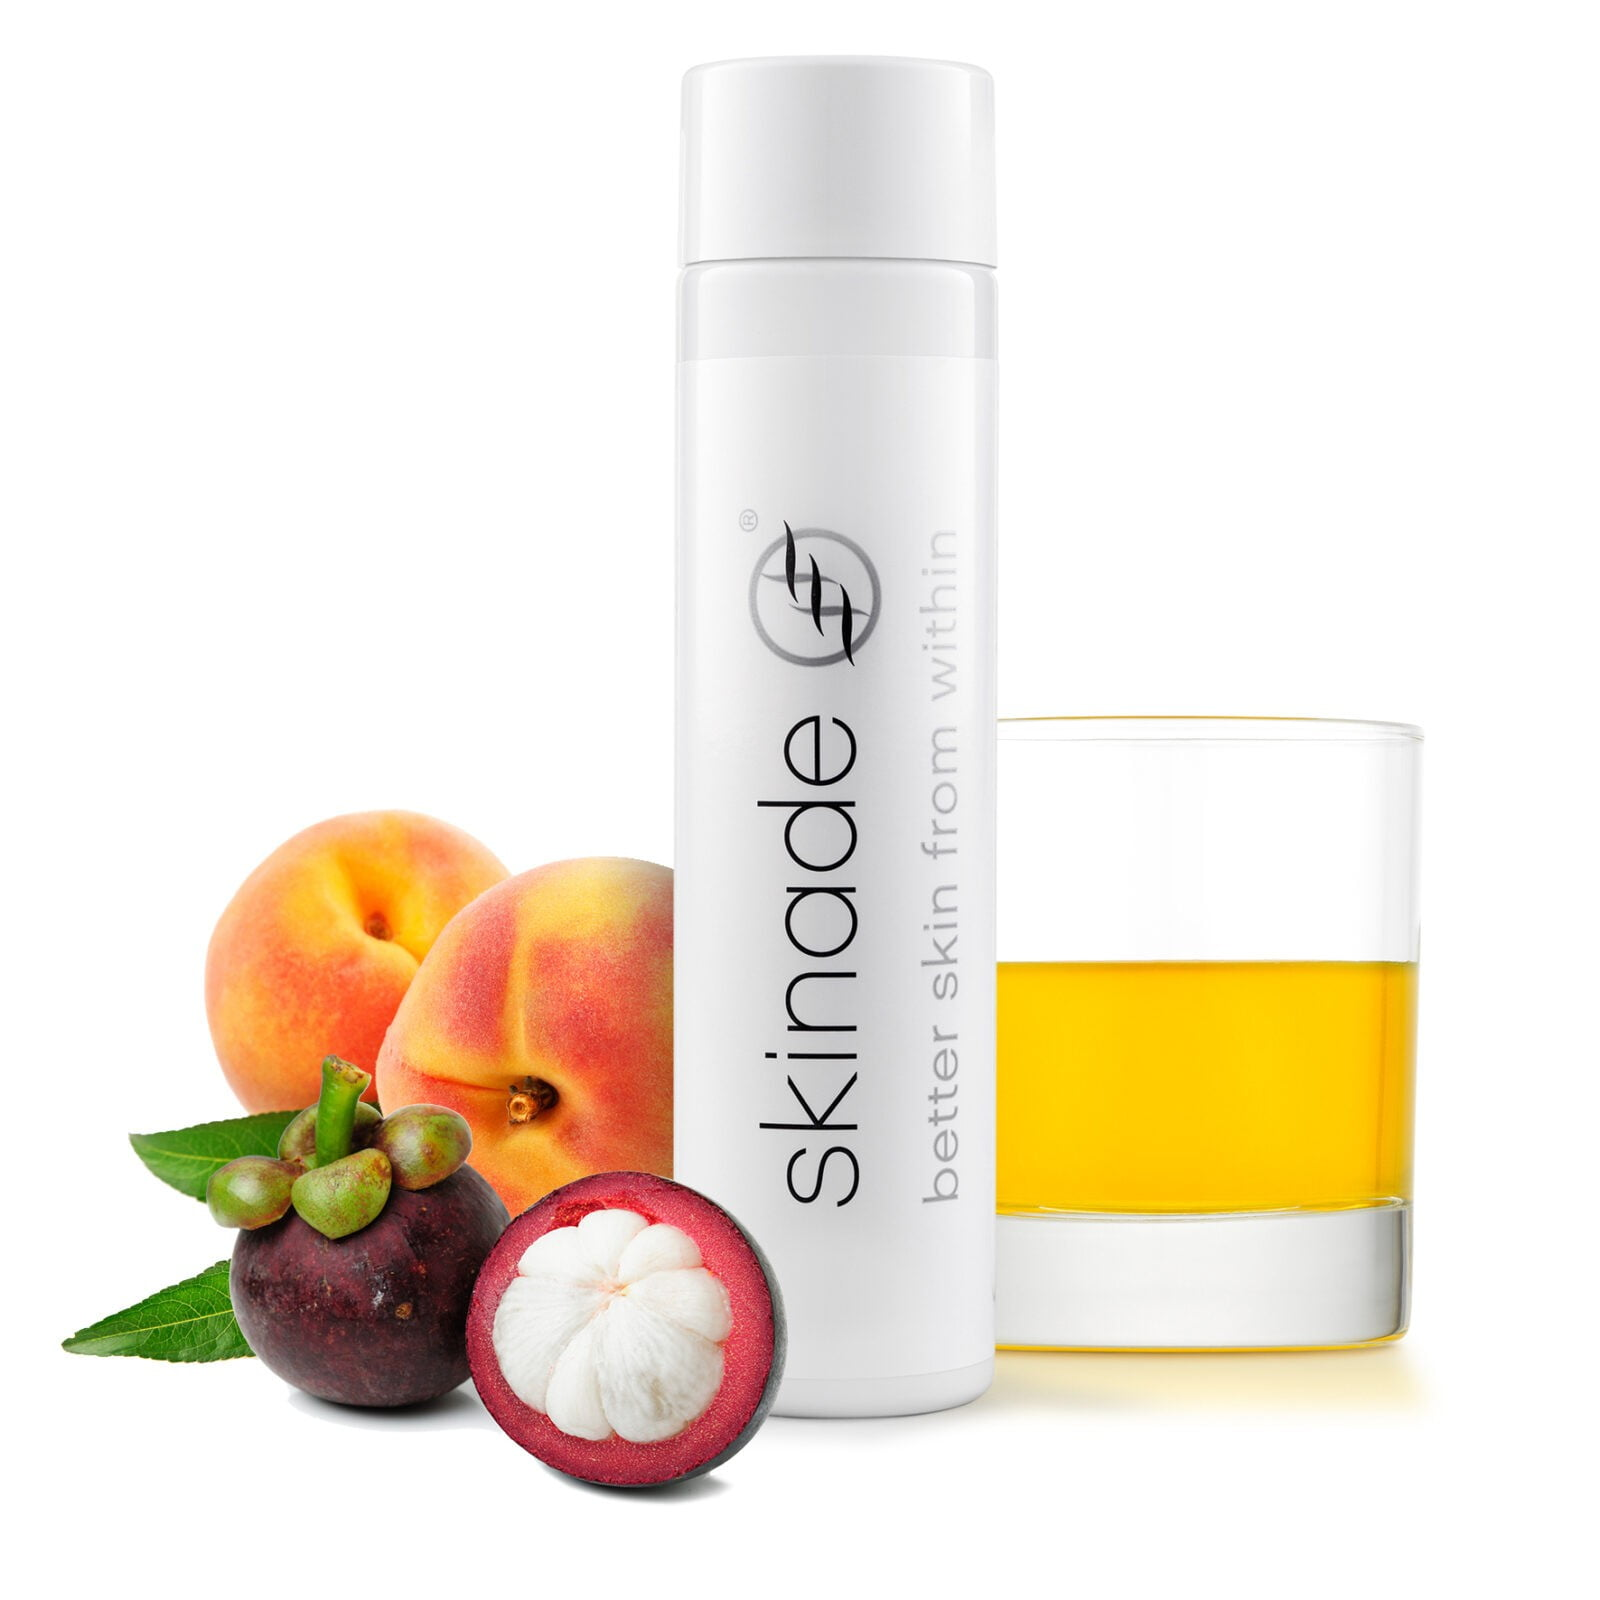 Skinade 10 day